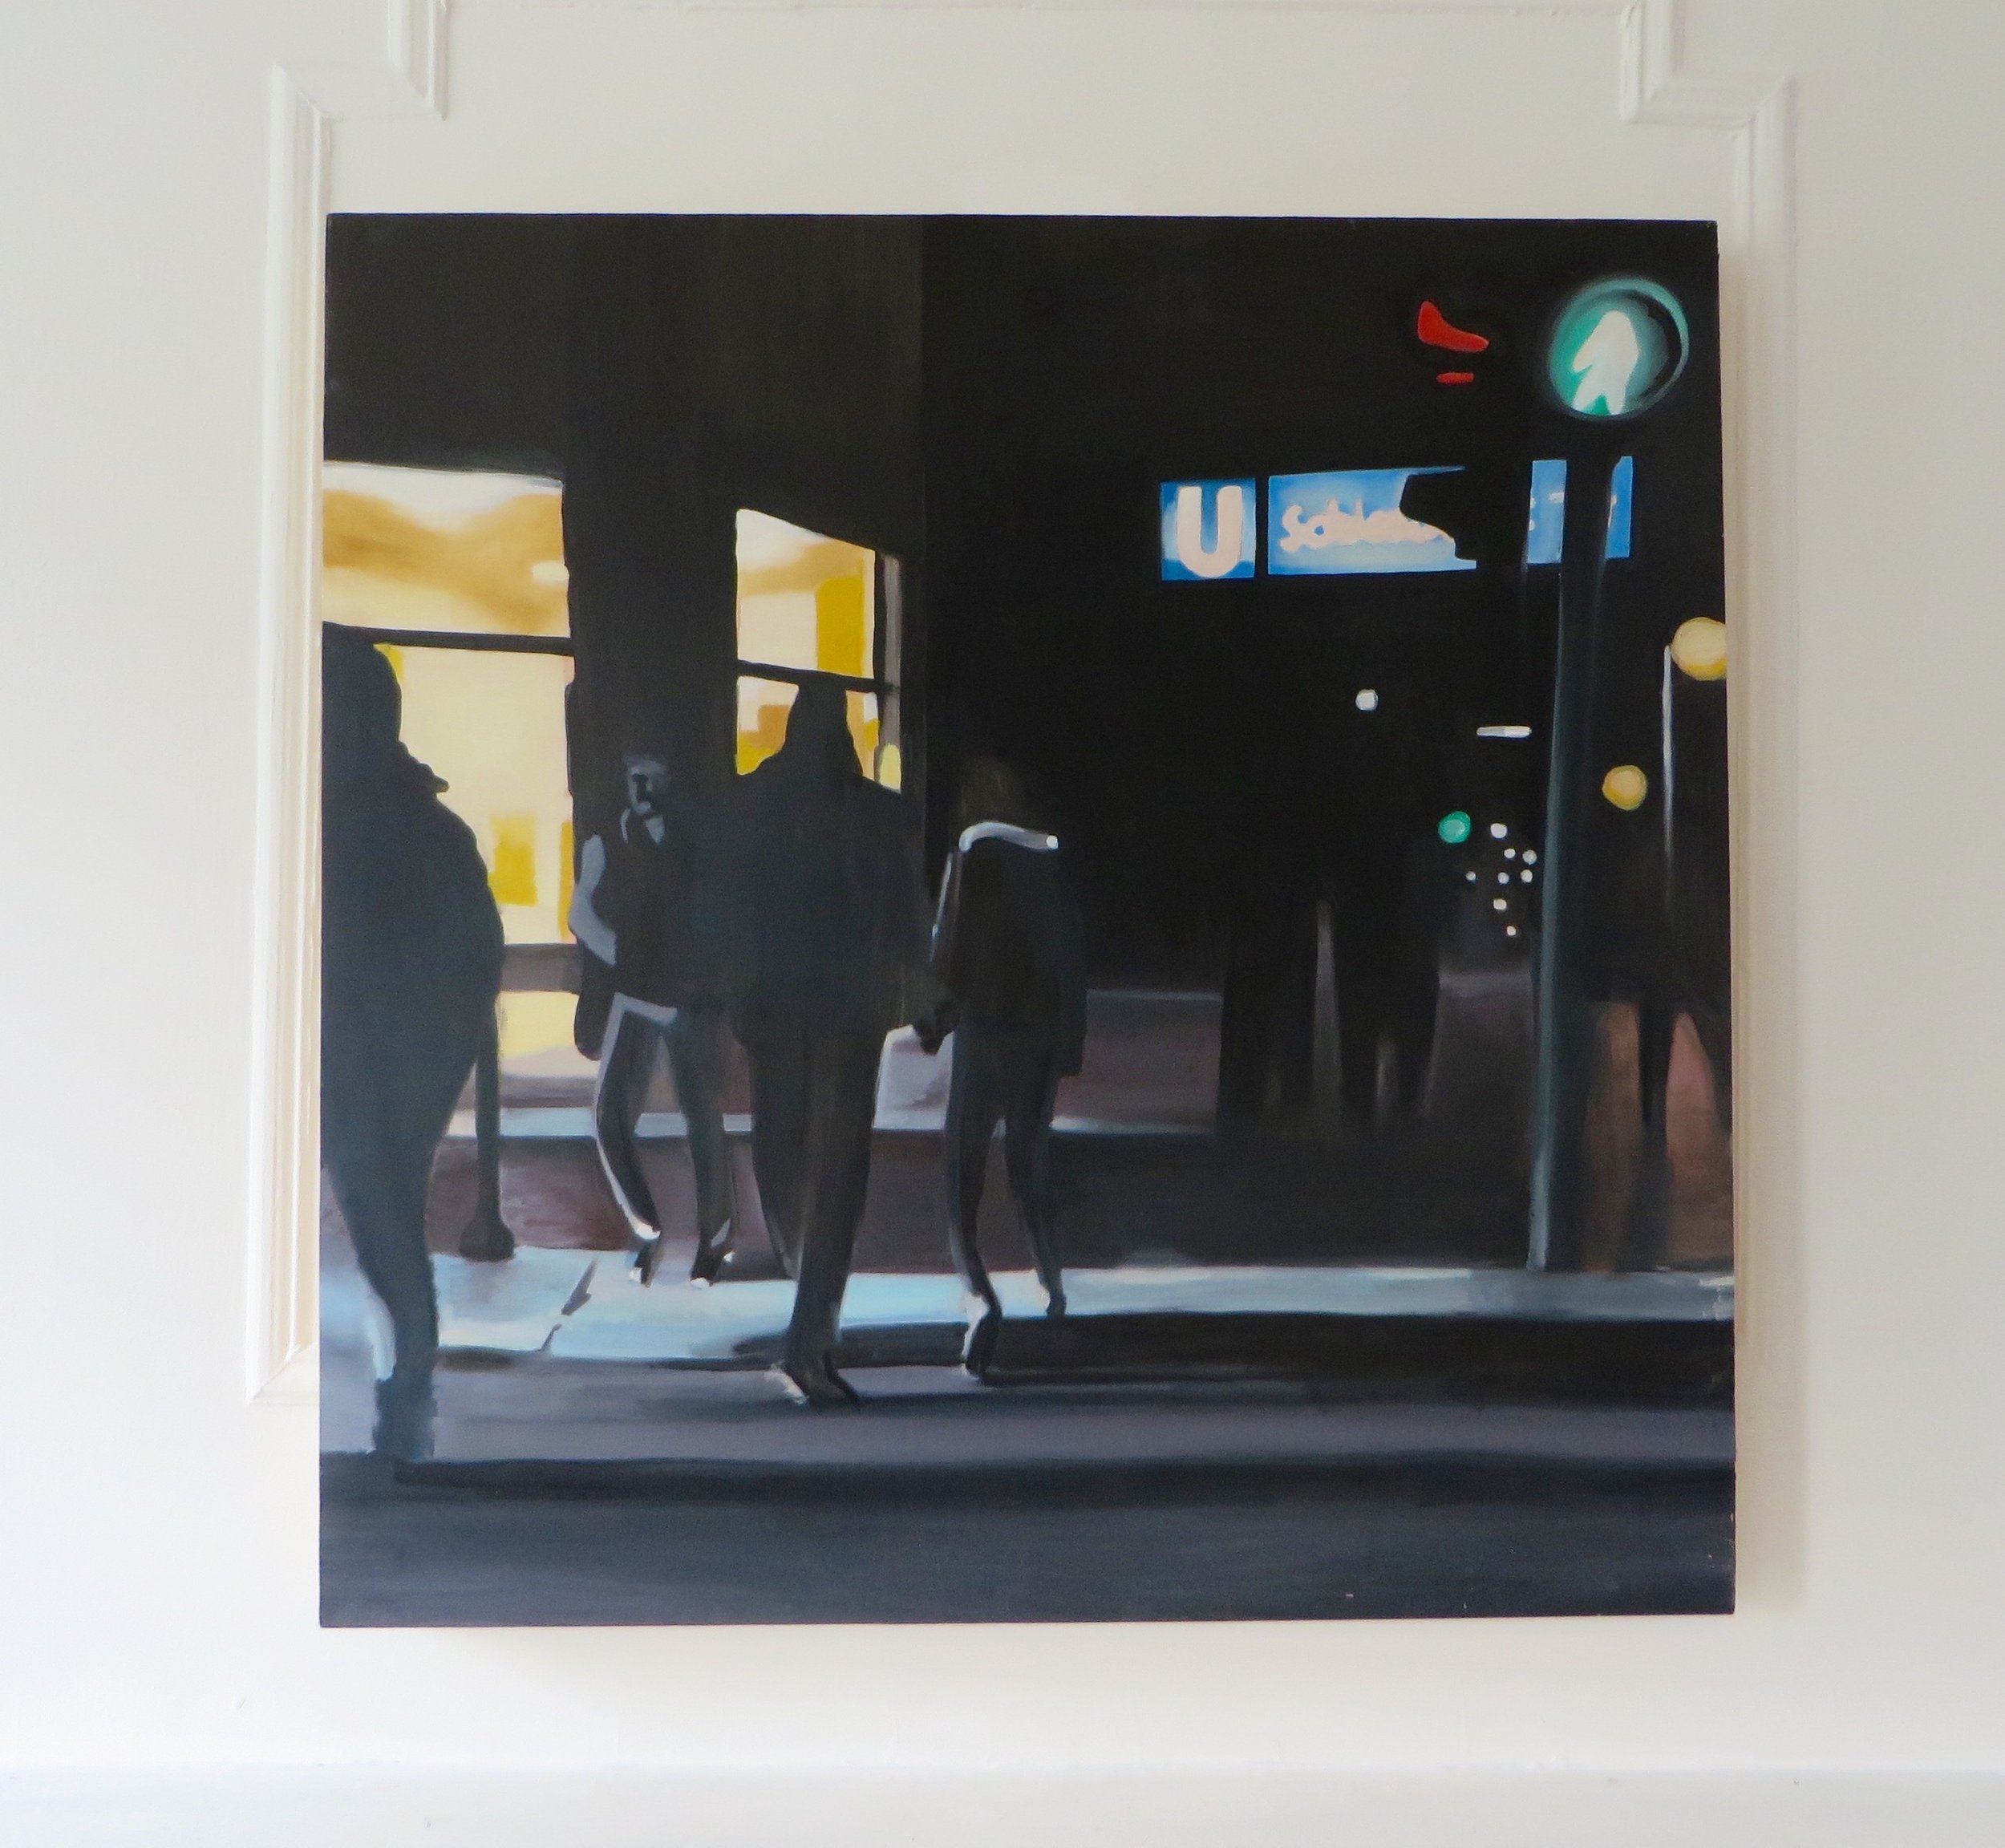 Skalitzer Straße,  2016 Oil on panel 36 x 36 inches 91.4 x 91.4 cm